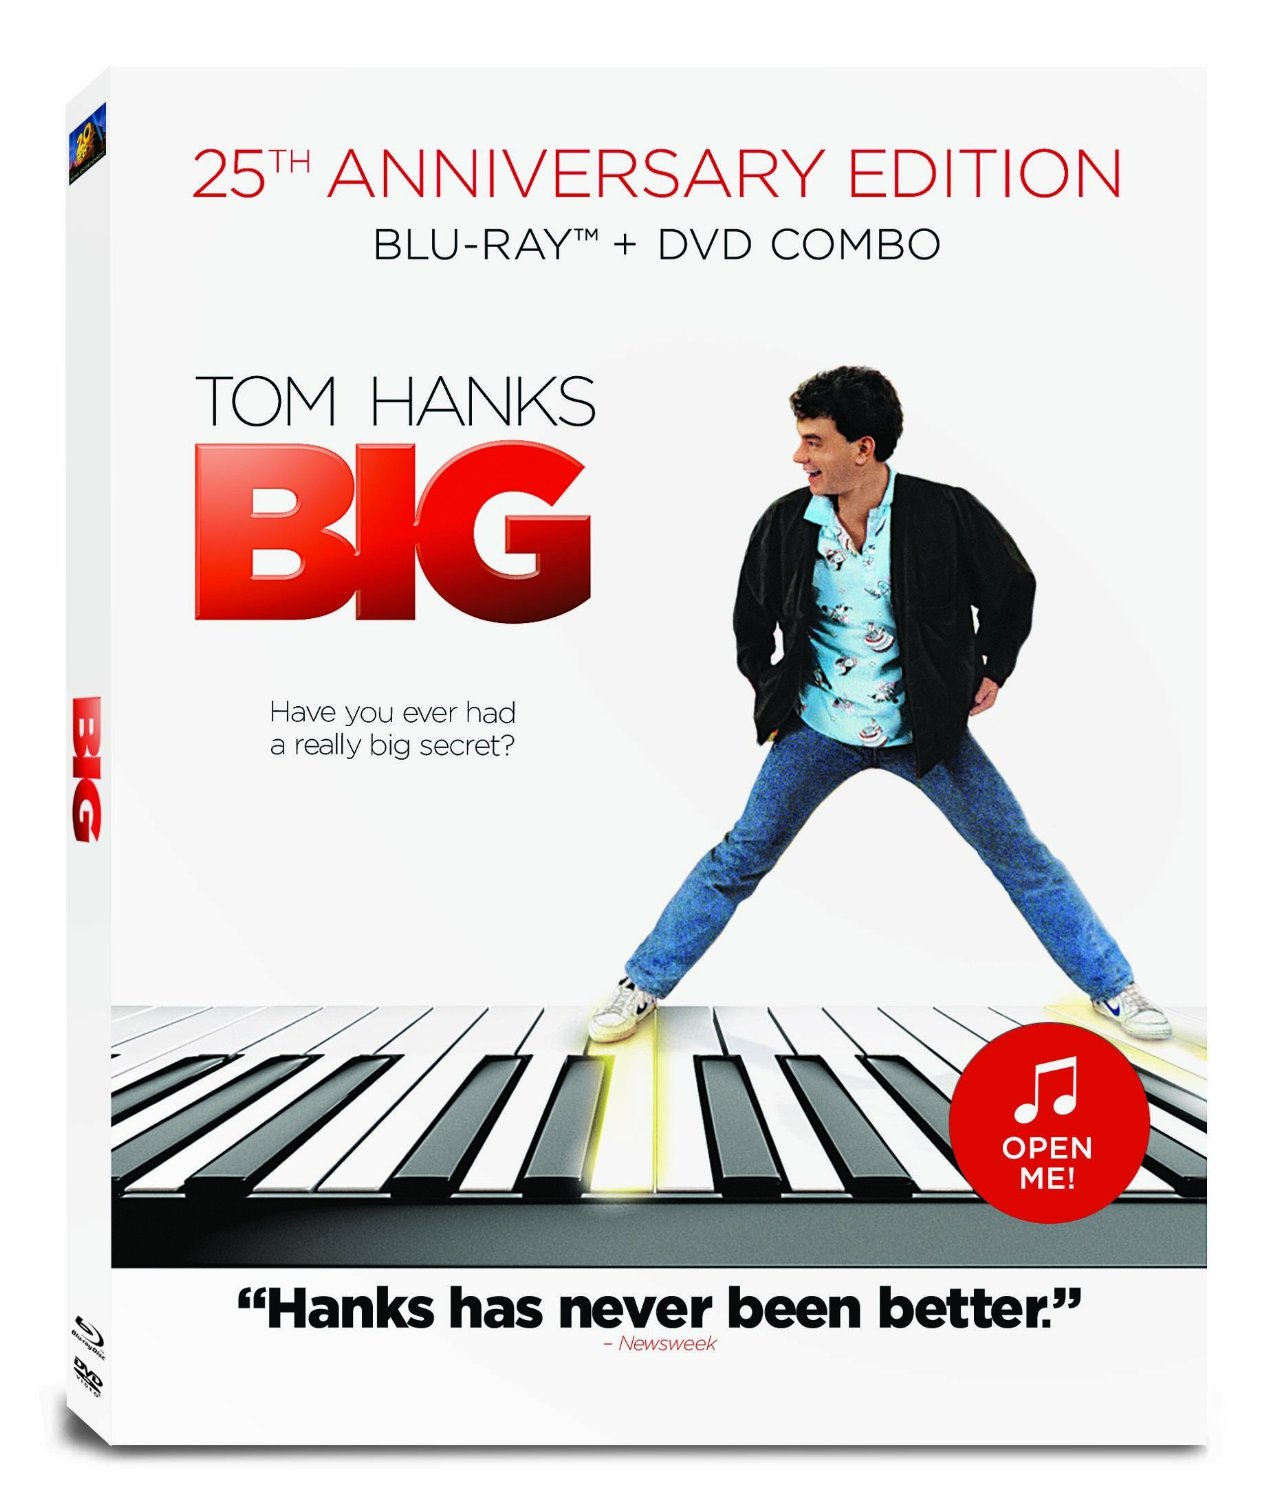 Tom Hanks Big 25th Anniversary DVD